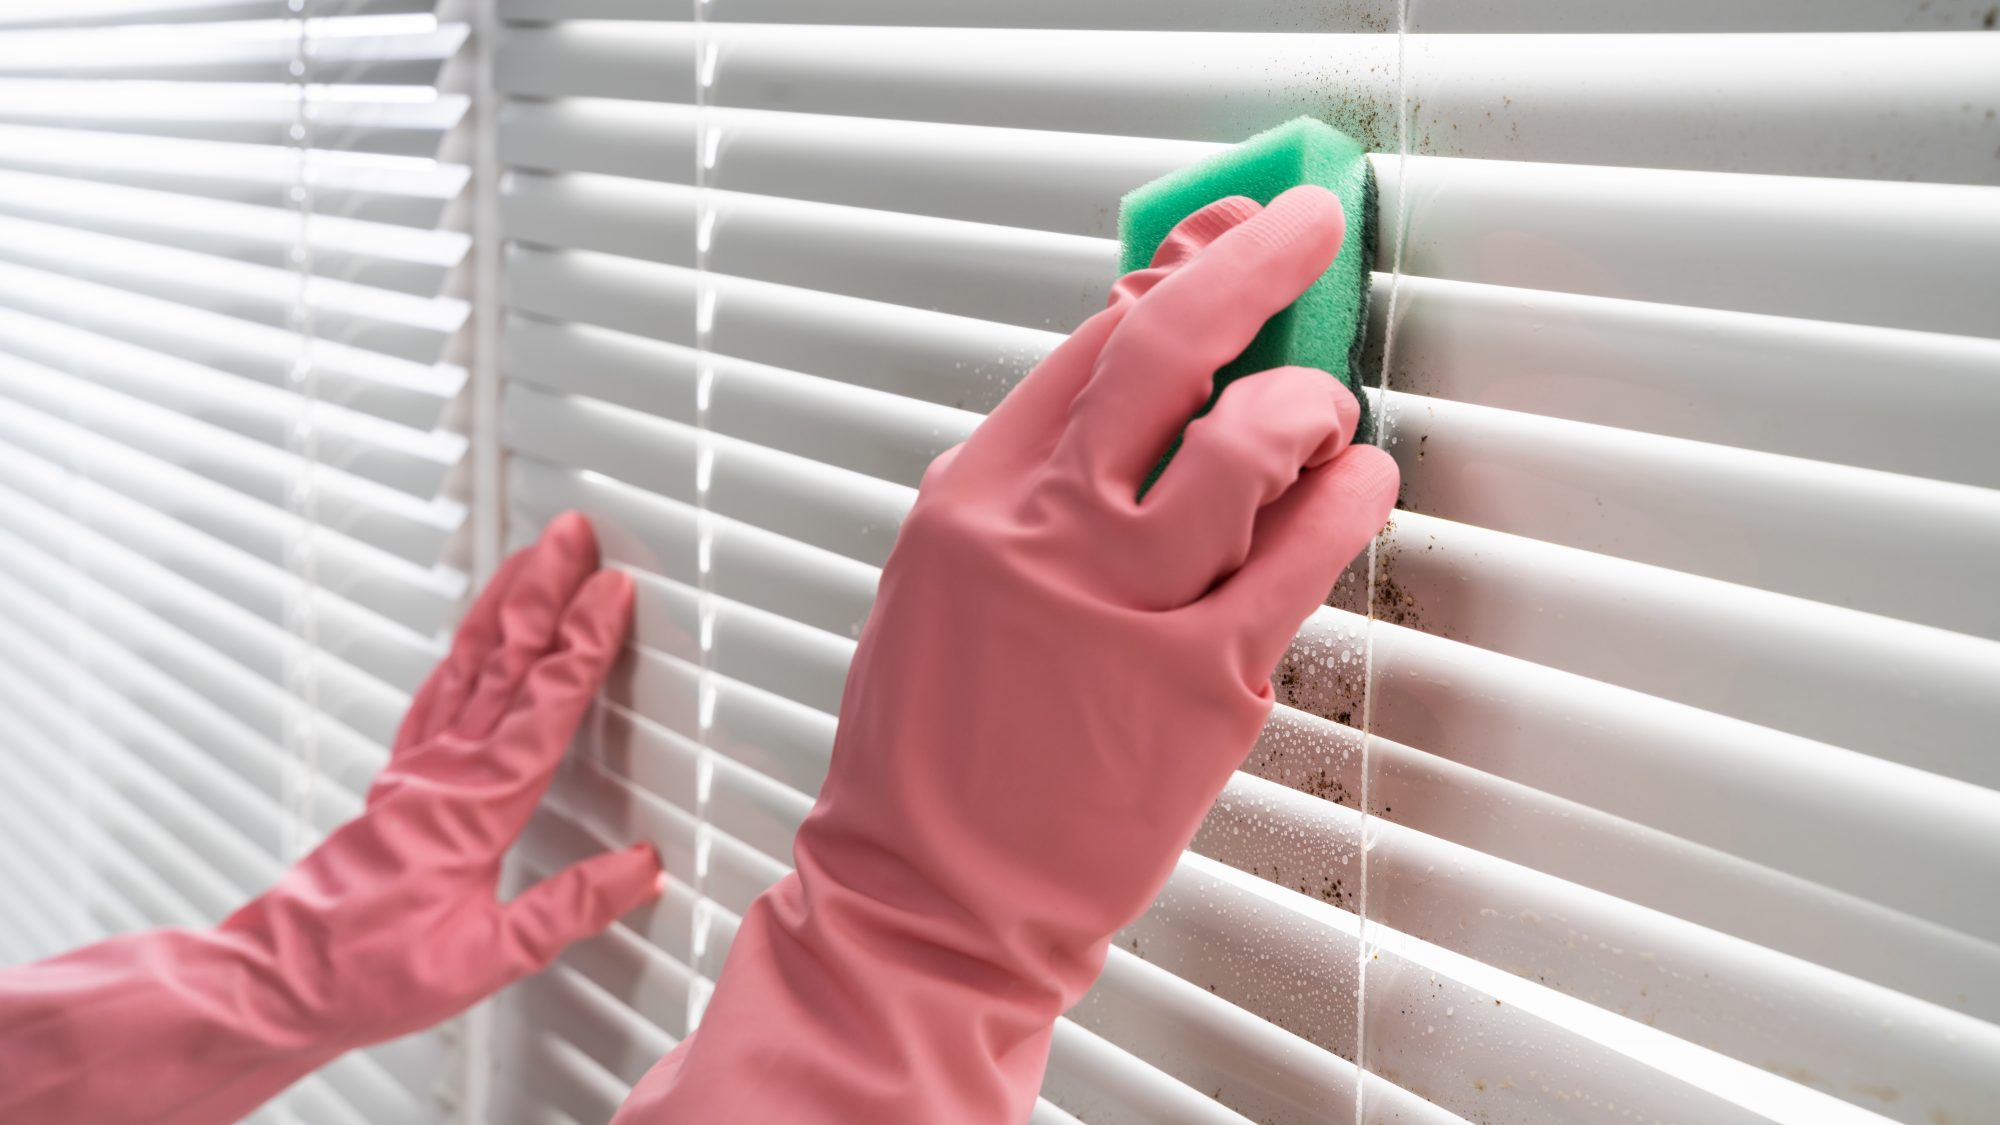 Person cleaning blinds